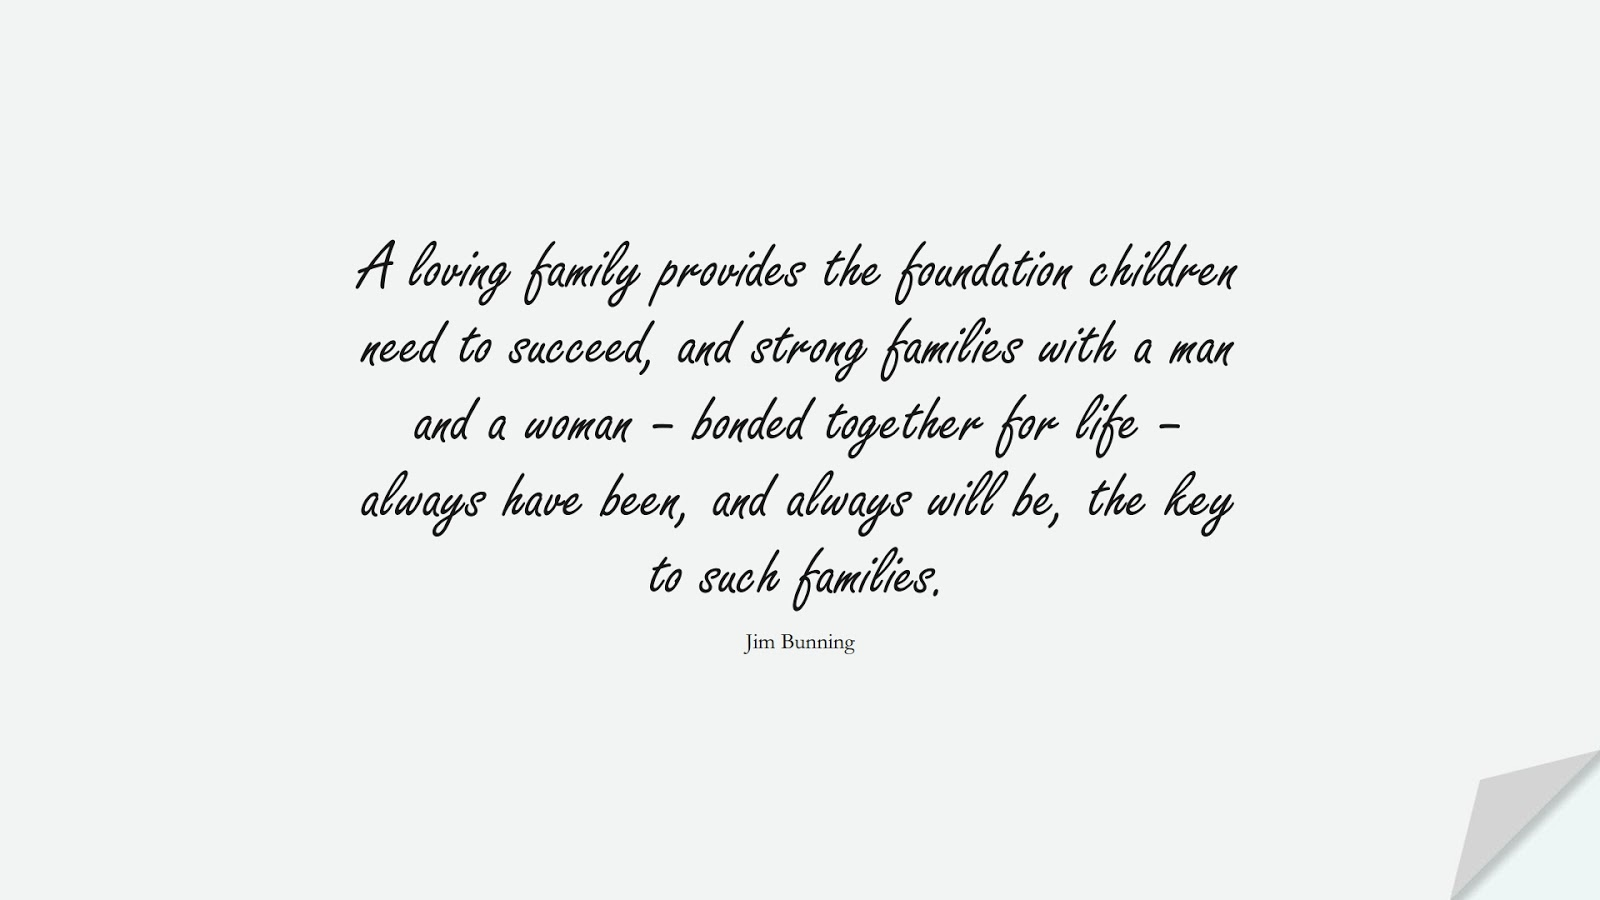 A loving family provides the foundation children need to succeed, and strong families with a man and a woman – bonded together for life – always have been, and always will be, the key to such families. (Jim Bunning);  #FamilyQuotes